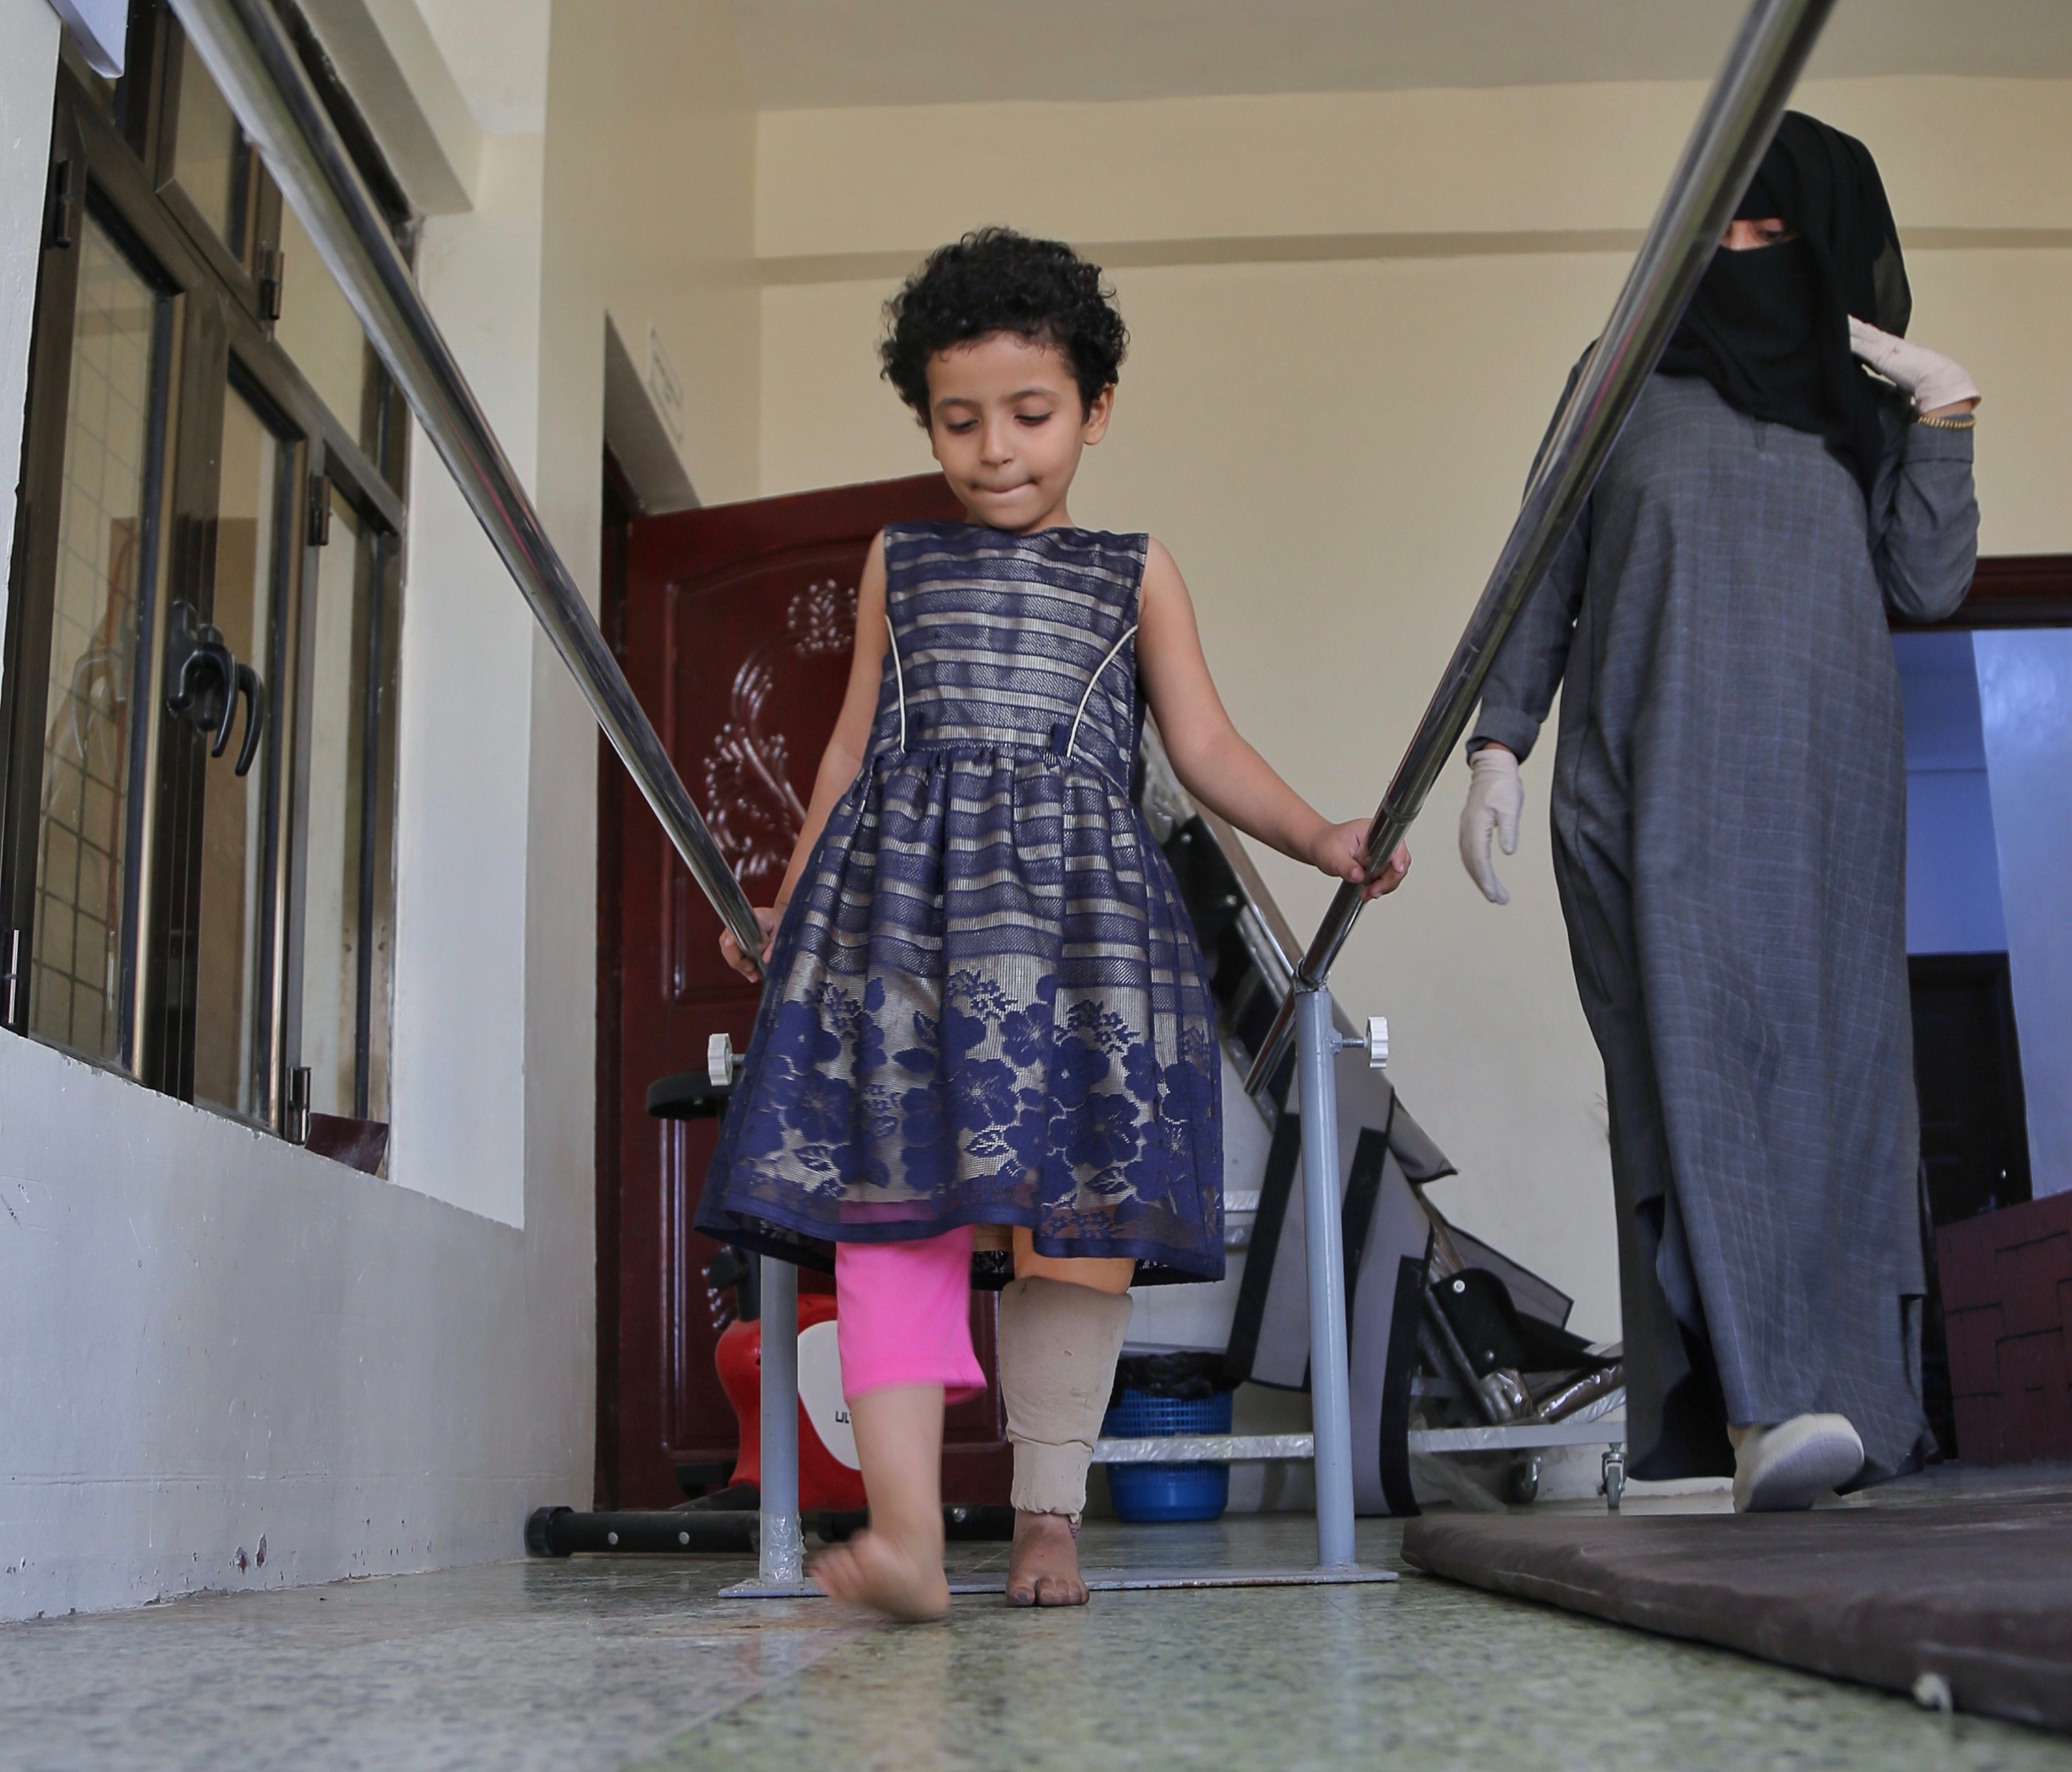 Yemen's disabled